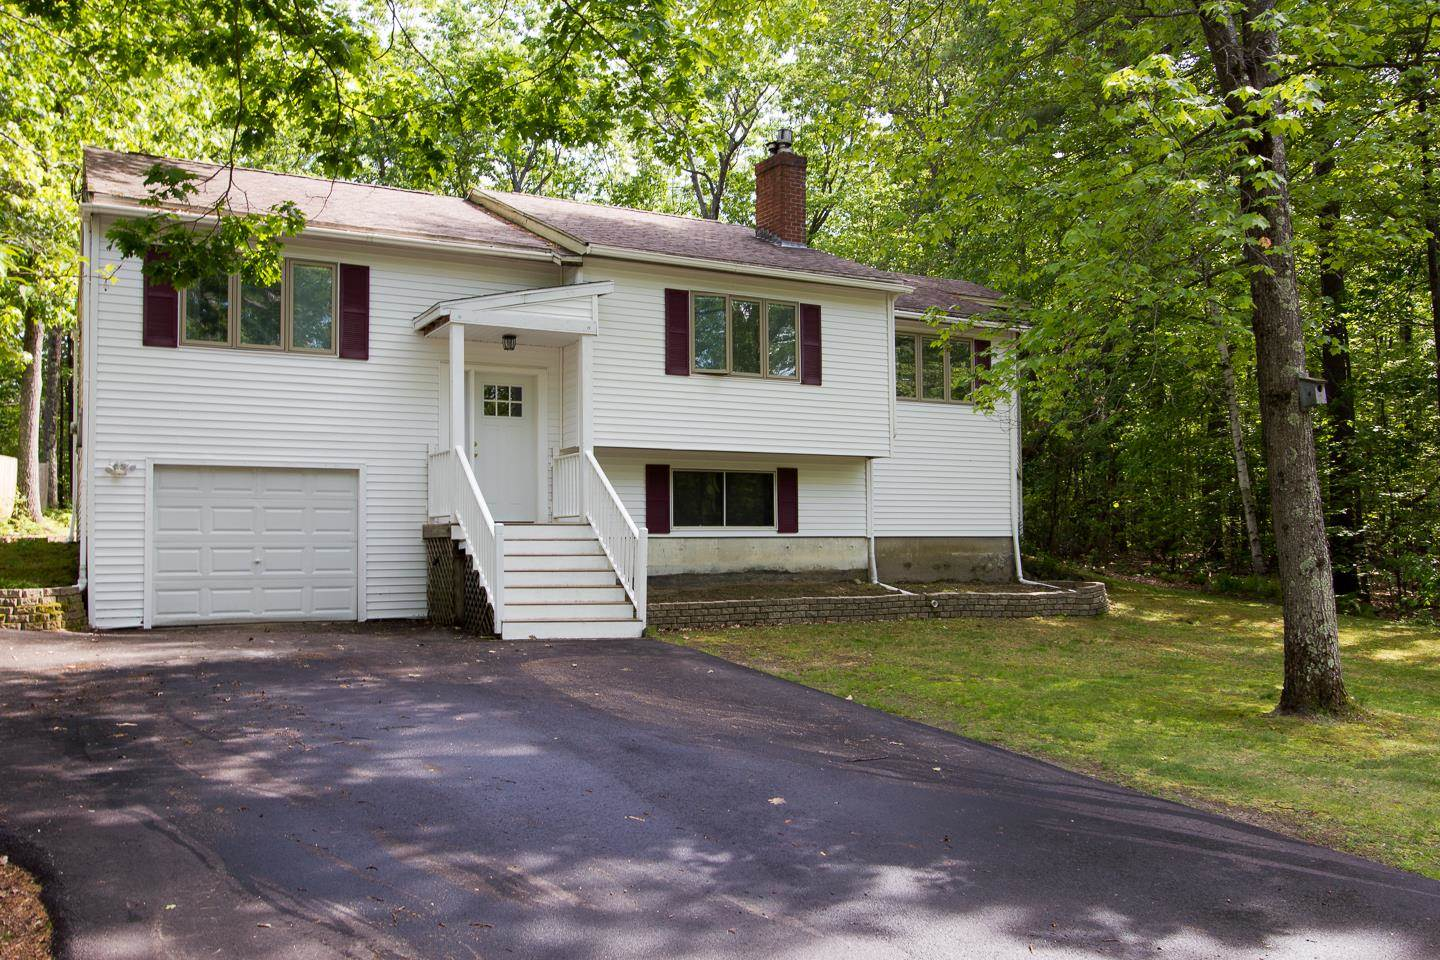 Photo of 111 Penacook Street Concord NH 03301